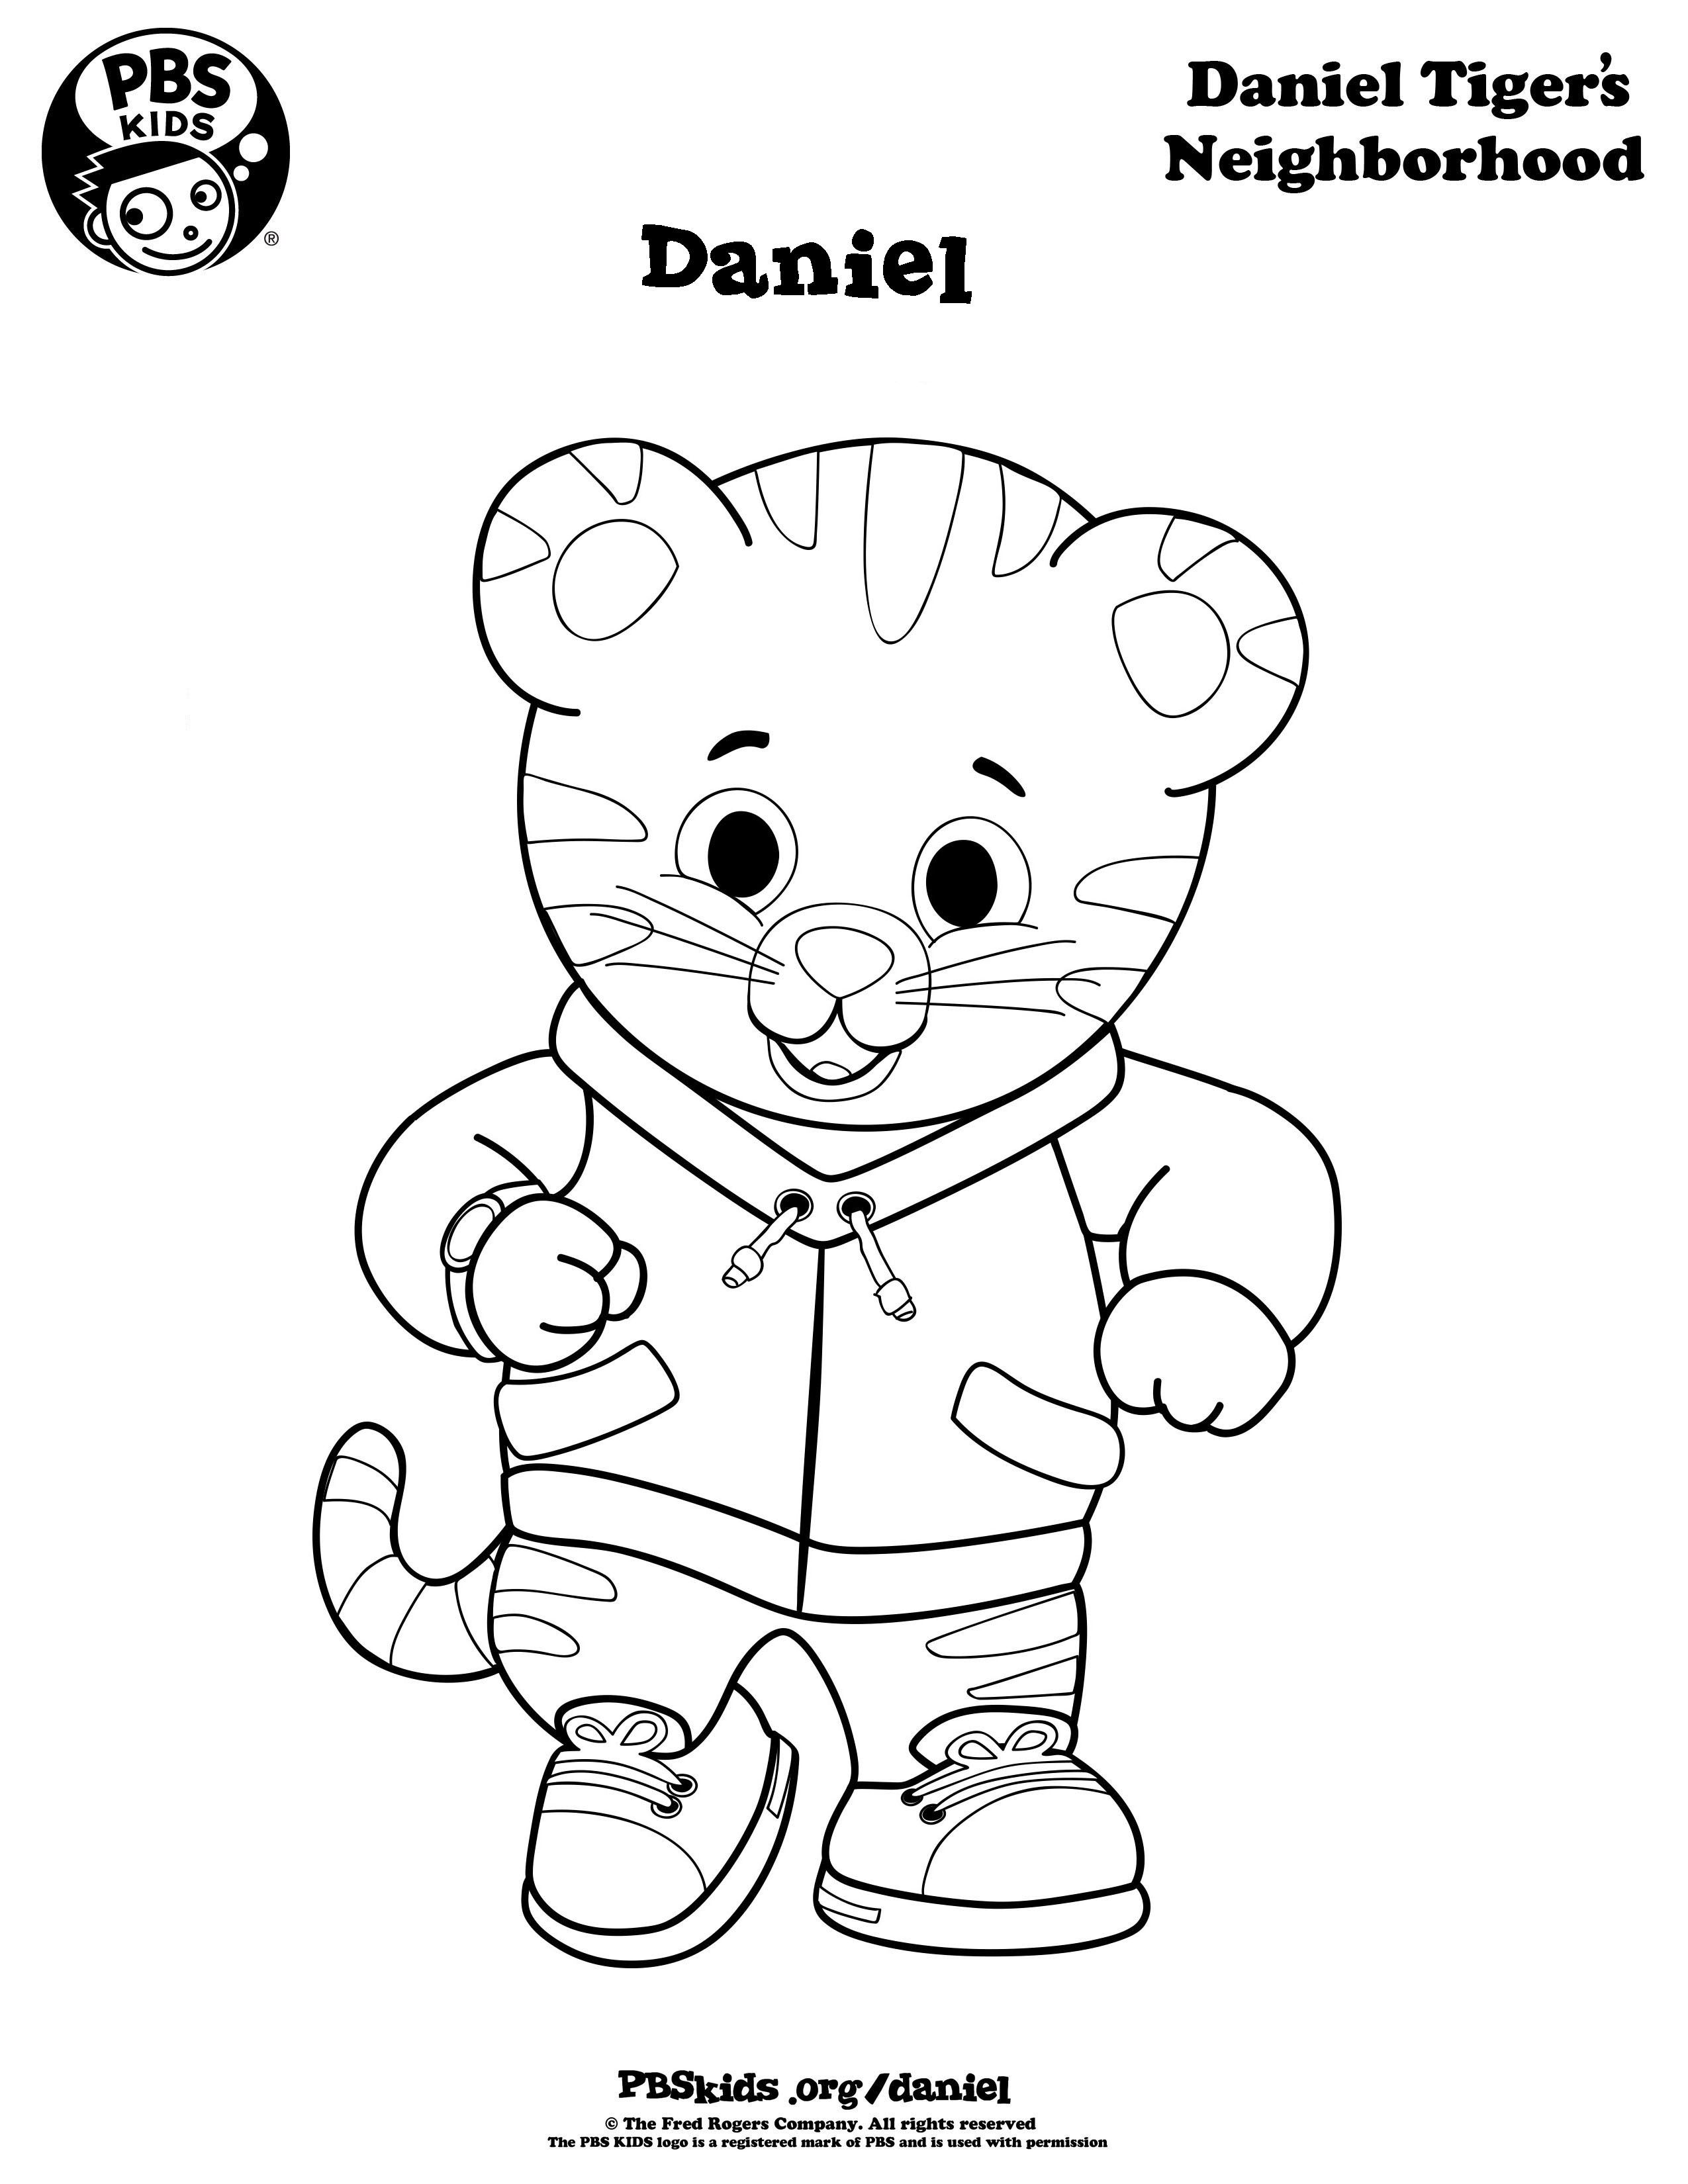 daniel tiger family coloring pages - photo#2